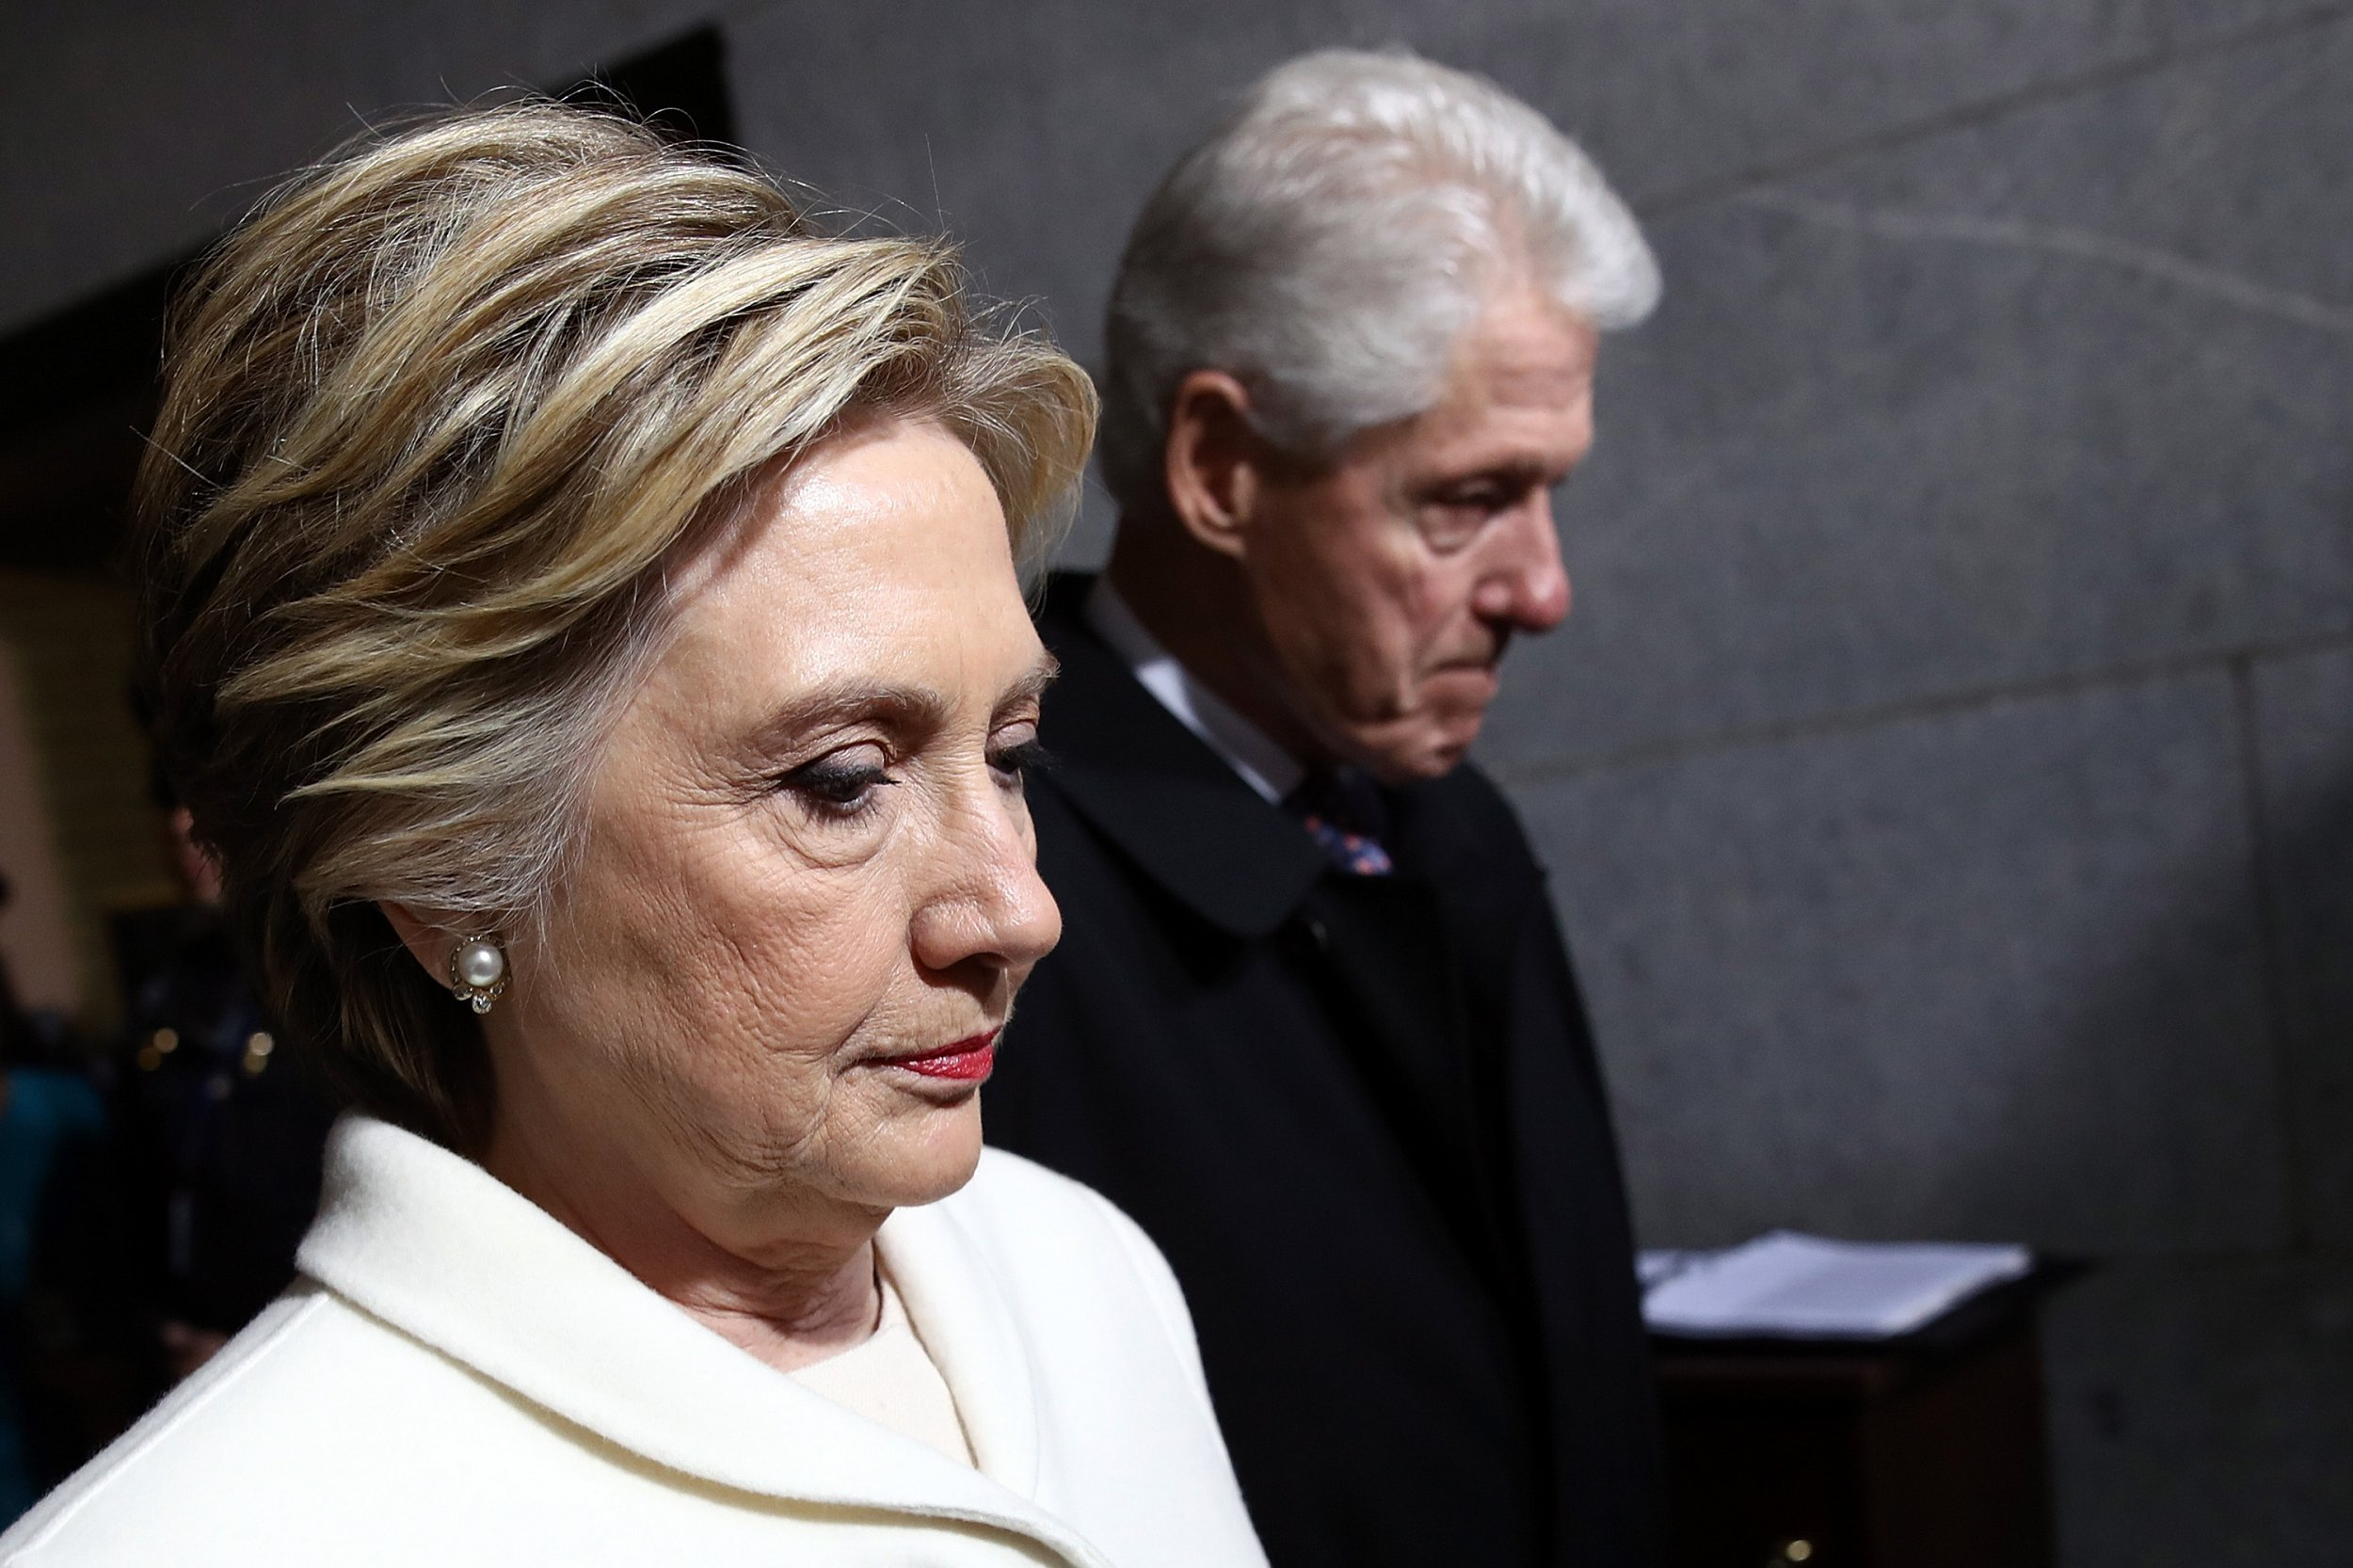 Are Hillary and Bill Clinton going to split? Couple haven't spoken 'in months'